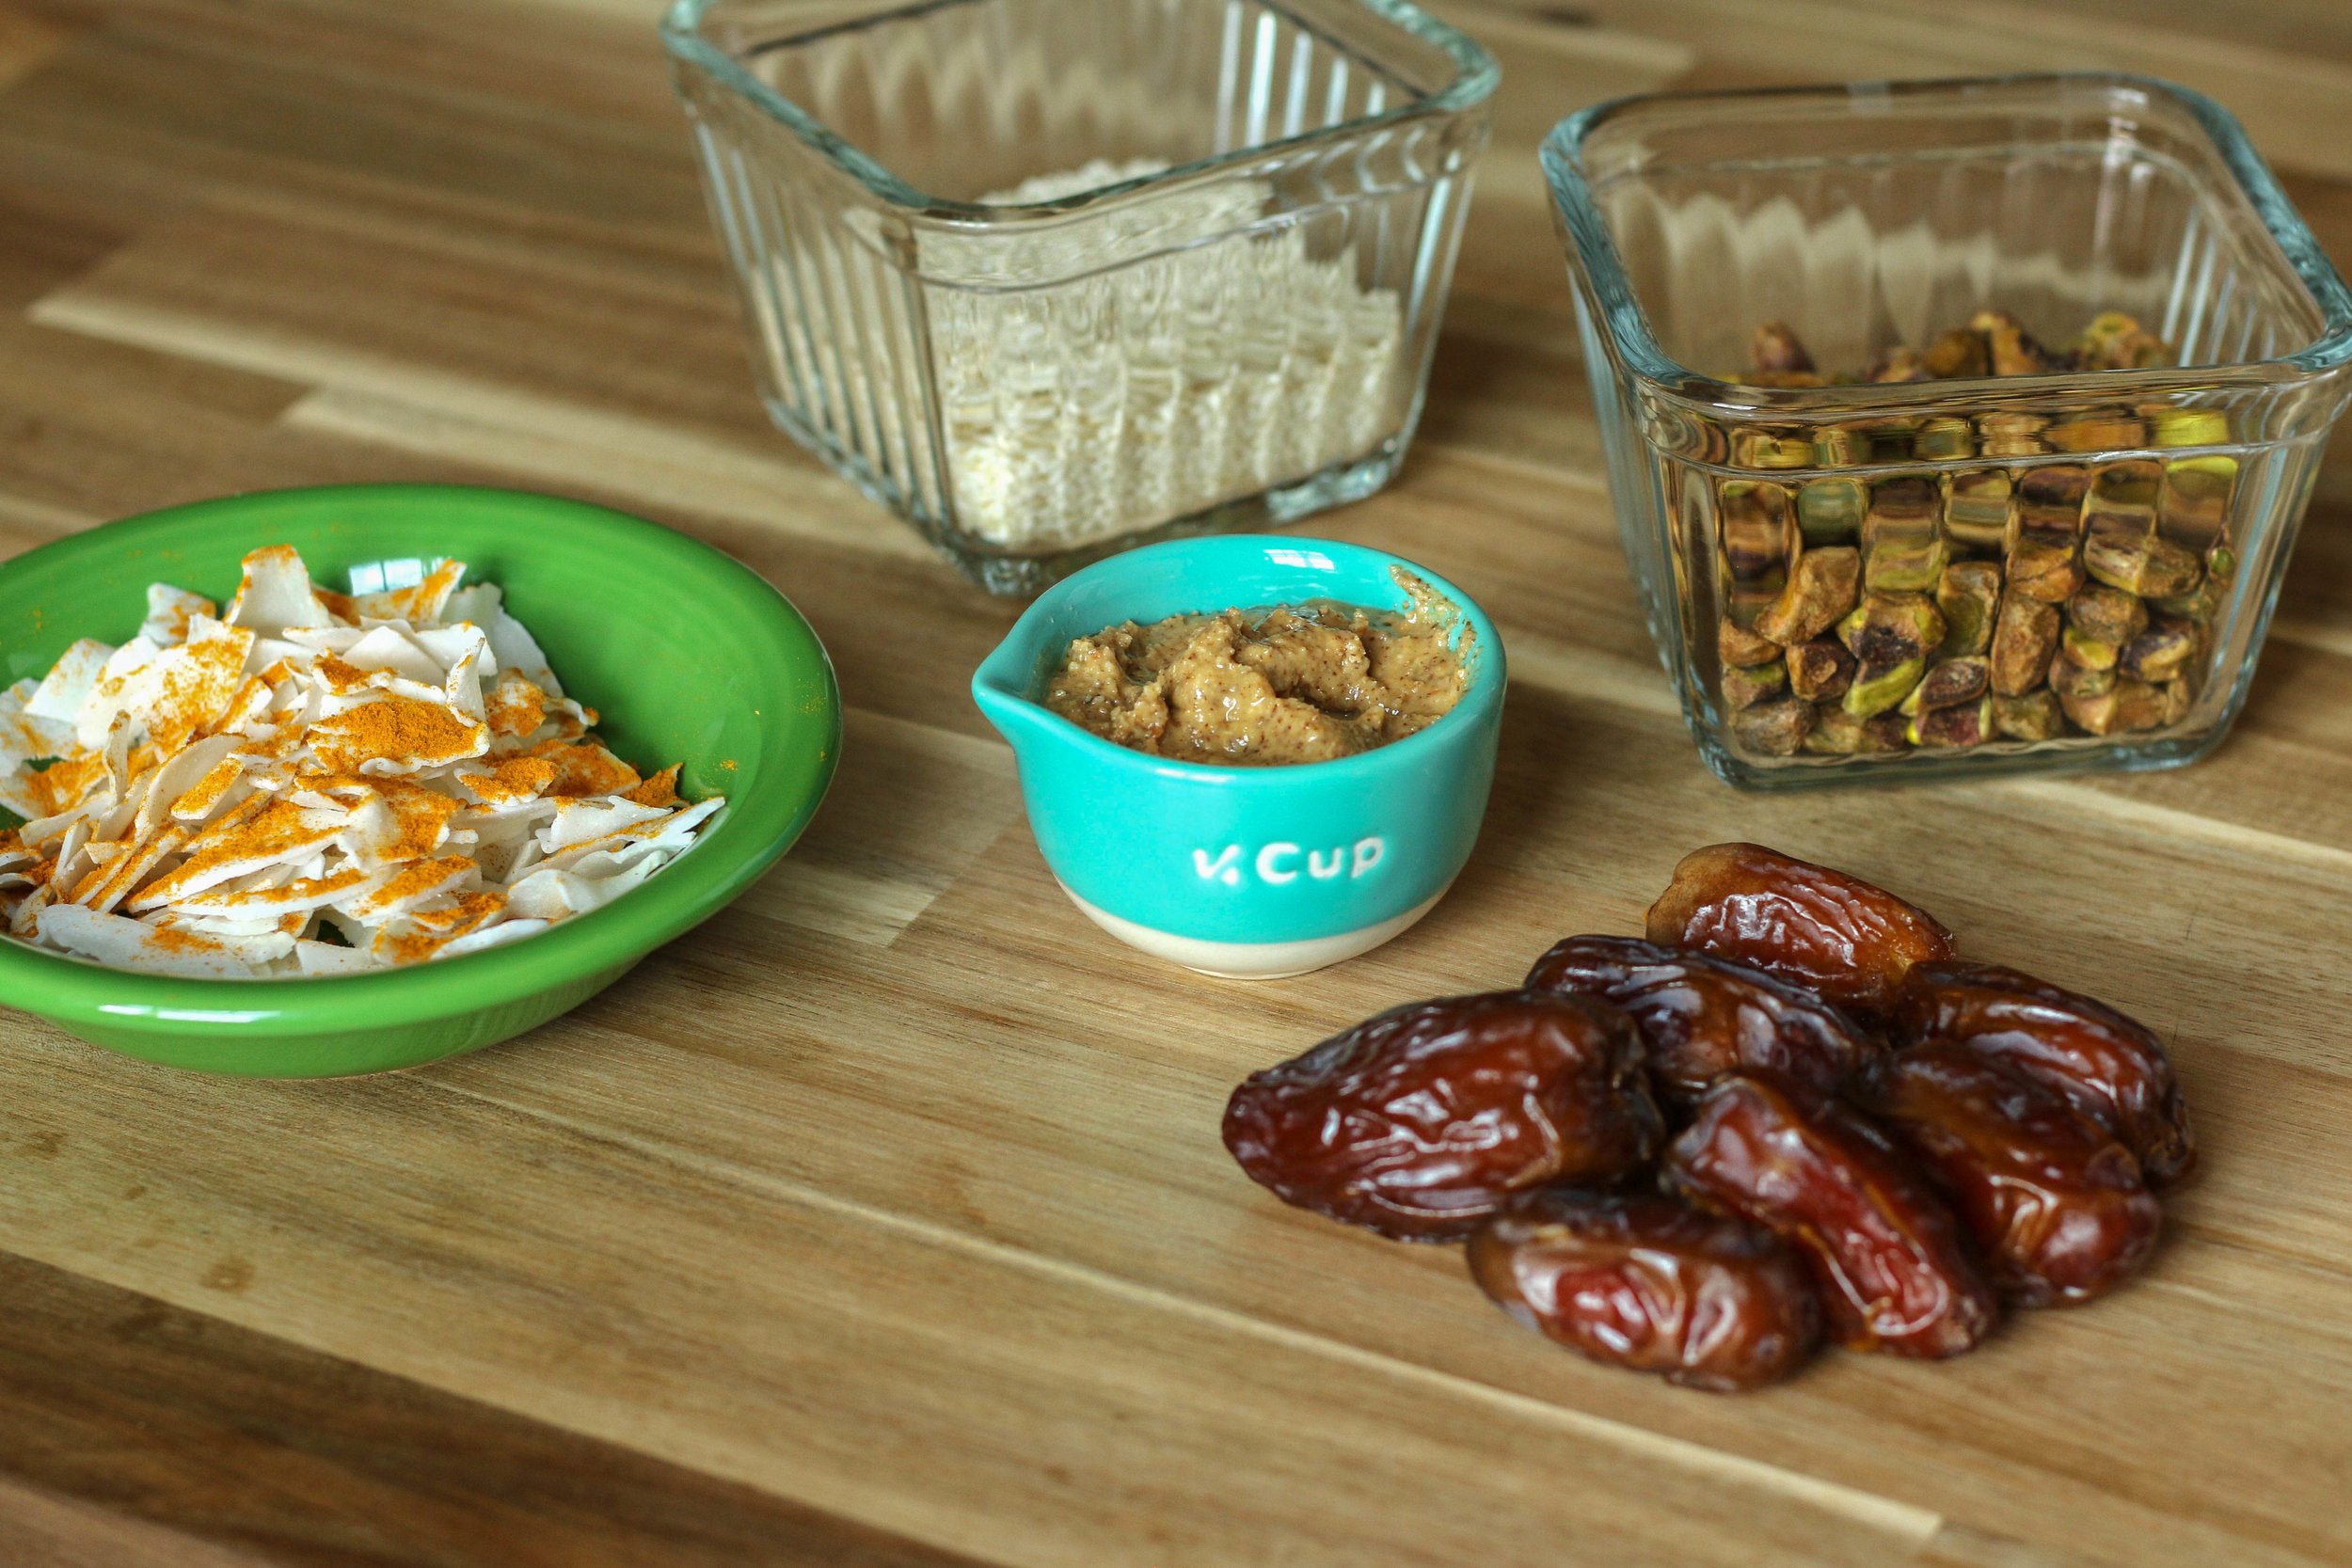 A note on dates : When blending large quantities, try your best to find 'fresh' medjool dates. You can tell if they feel  soft and pliable , vs hard and dried out. The soft texture will allow them to blend easier AND yields the best texture for the energy balls!